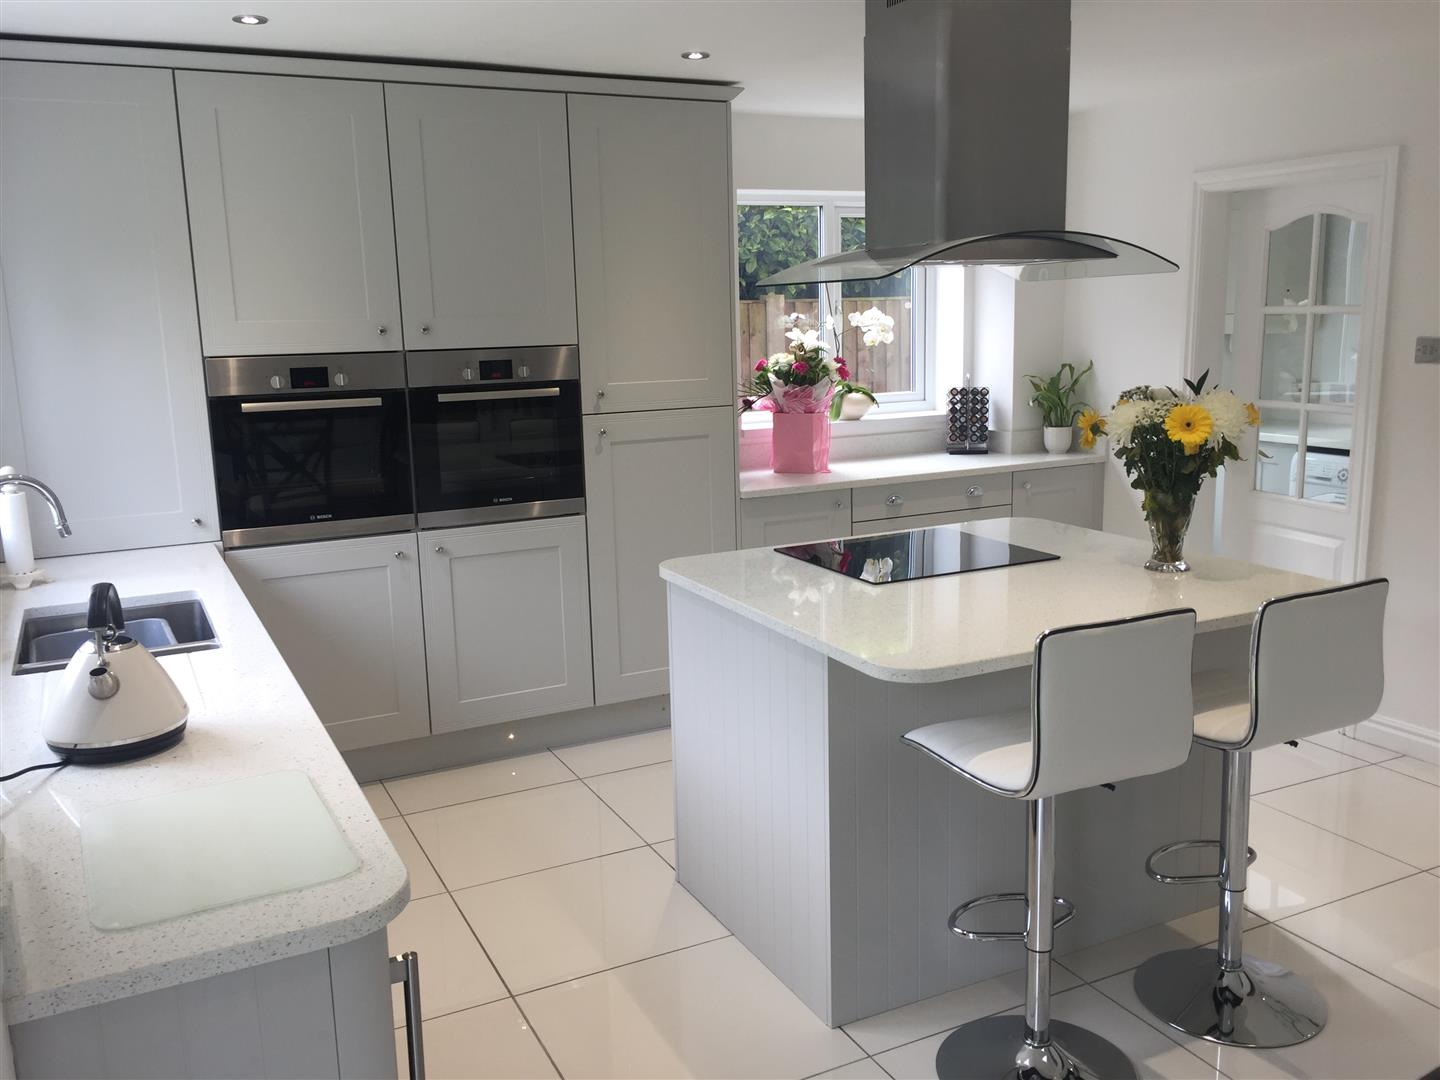 Classic Dove Grey Kitchen with Solid Quartz - Priorslee, Telford